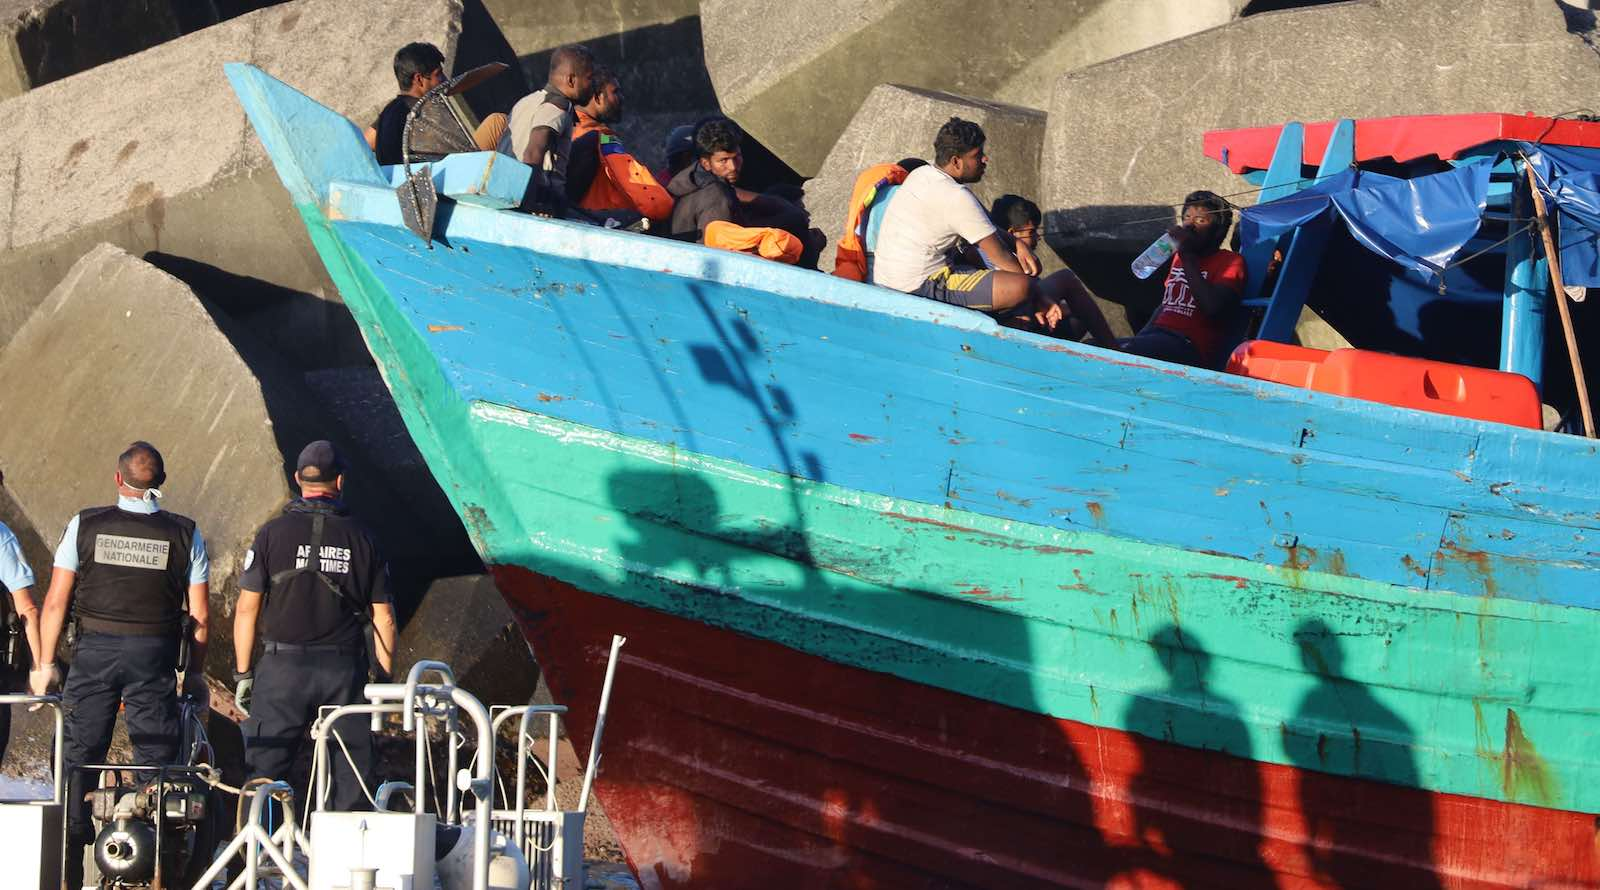 French gendarmes arrive to disembark migrants from a boat on 13 April in Sainte-Rose, on the French Indian ocean island of Réunion (Photo: Richard Bouhet/AFP/Getty Images)